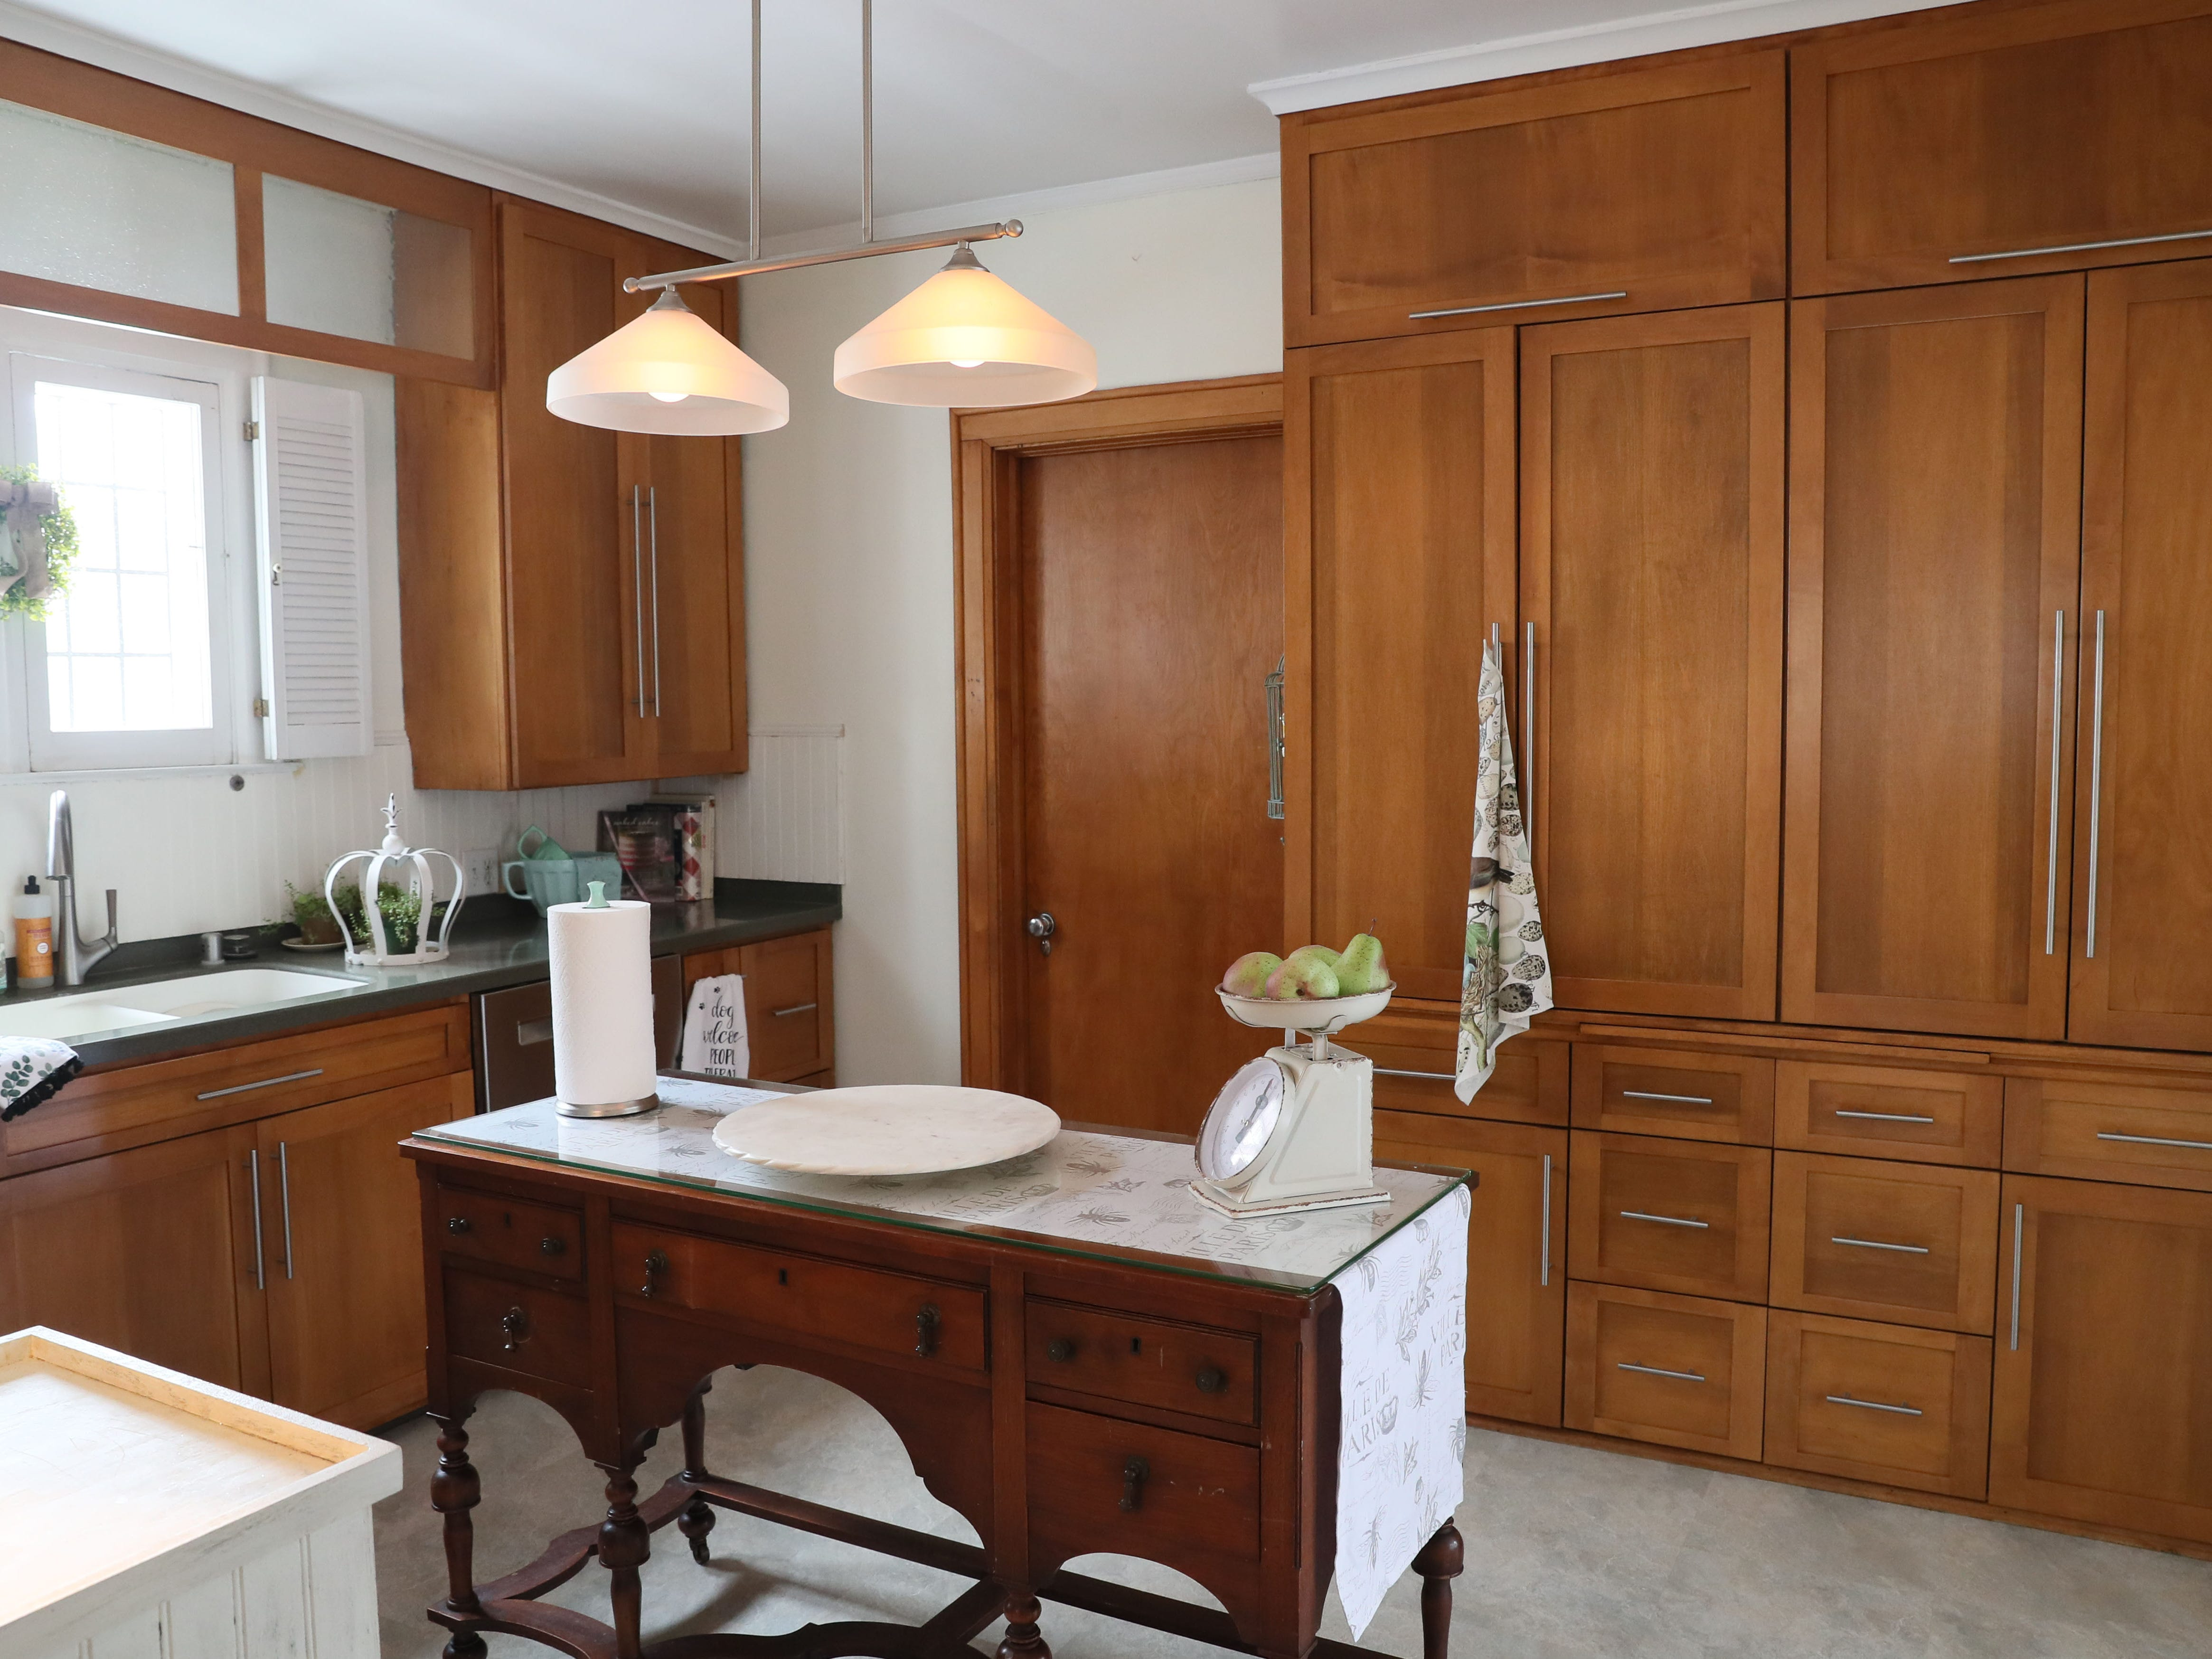 The cabinets in the kitchen are original, but the previous homeowner had the doors refaced.